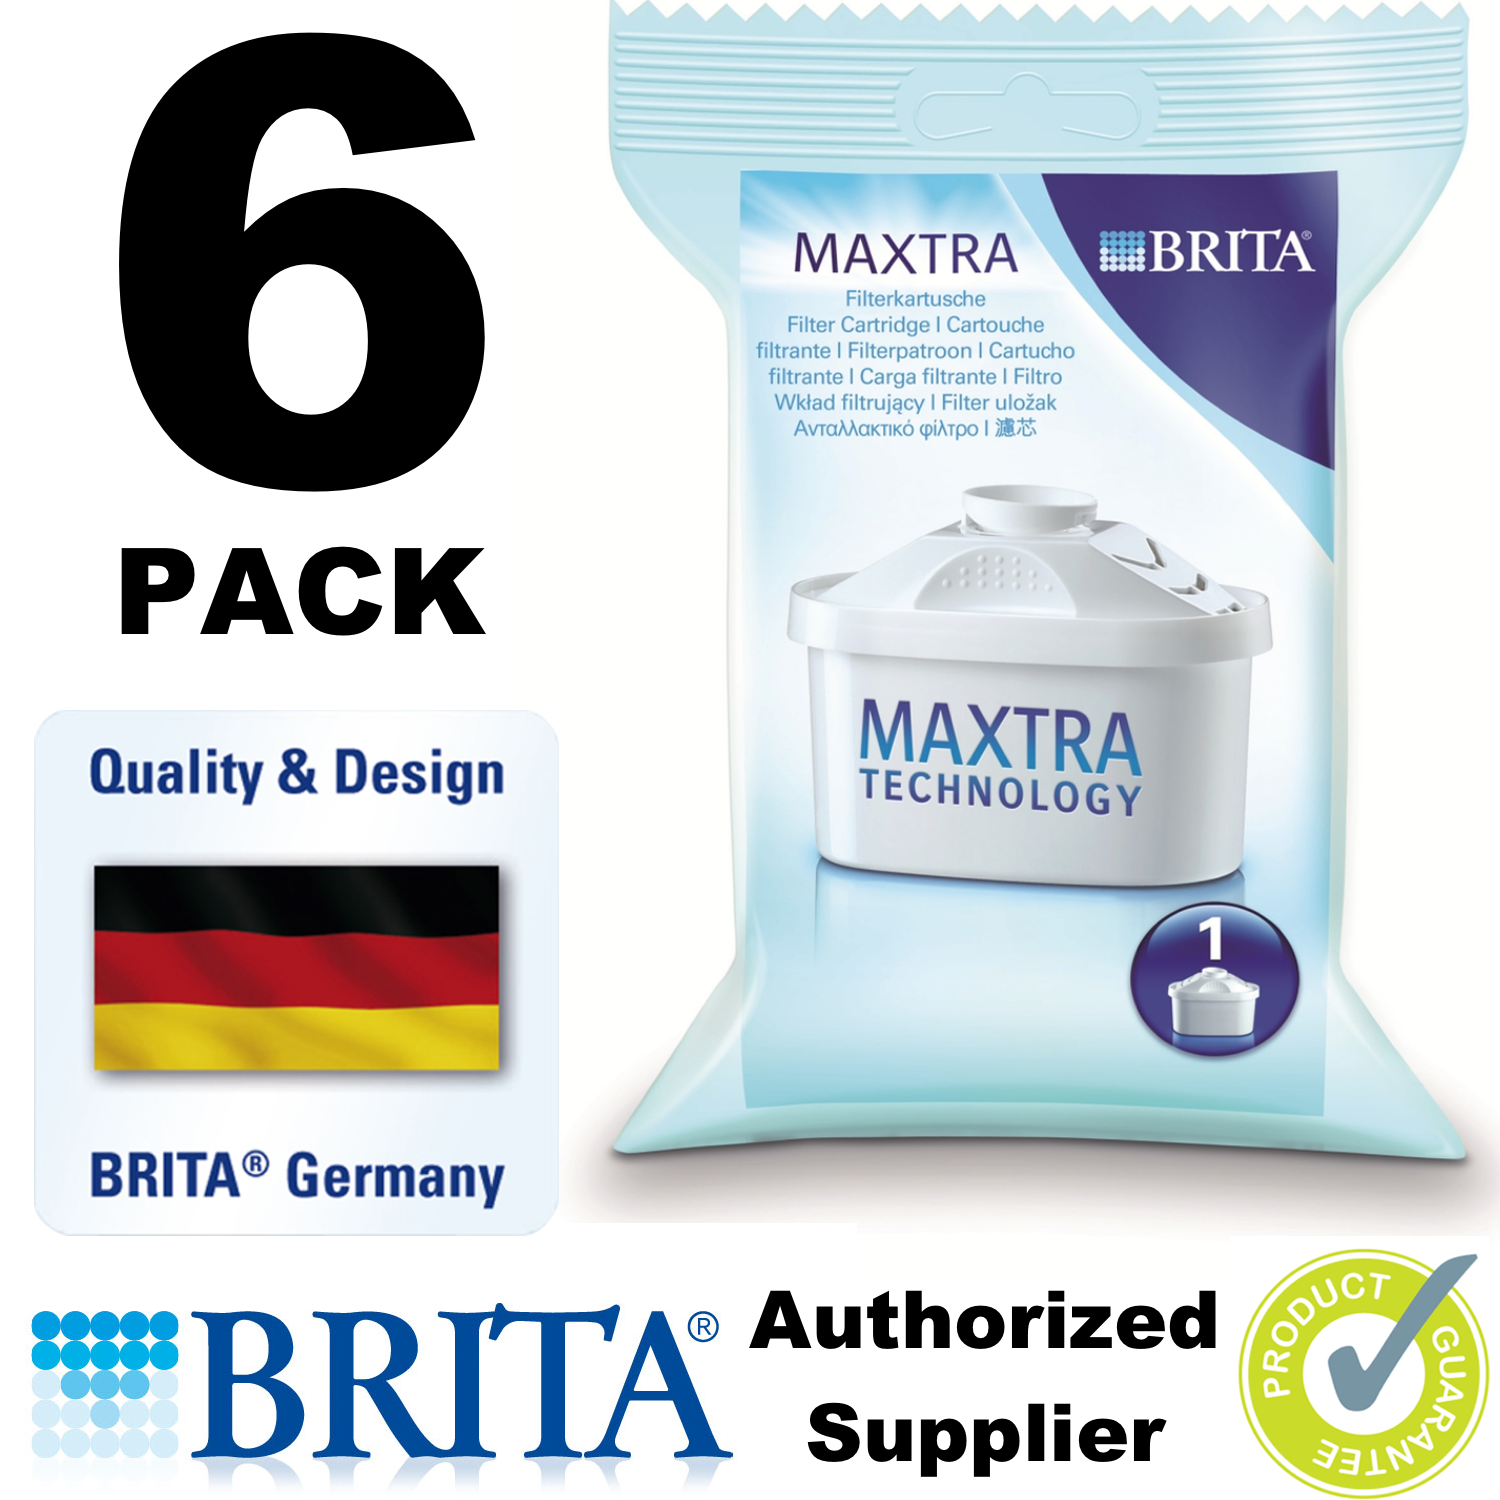 BRITA MAXTRA Water Filter Jug Refills Genuine Replacement Cartridges - Pack of 6